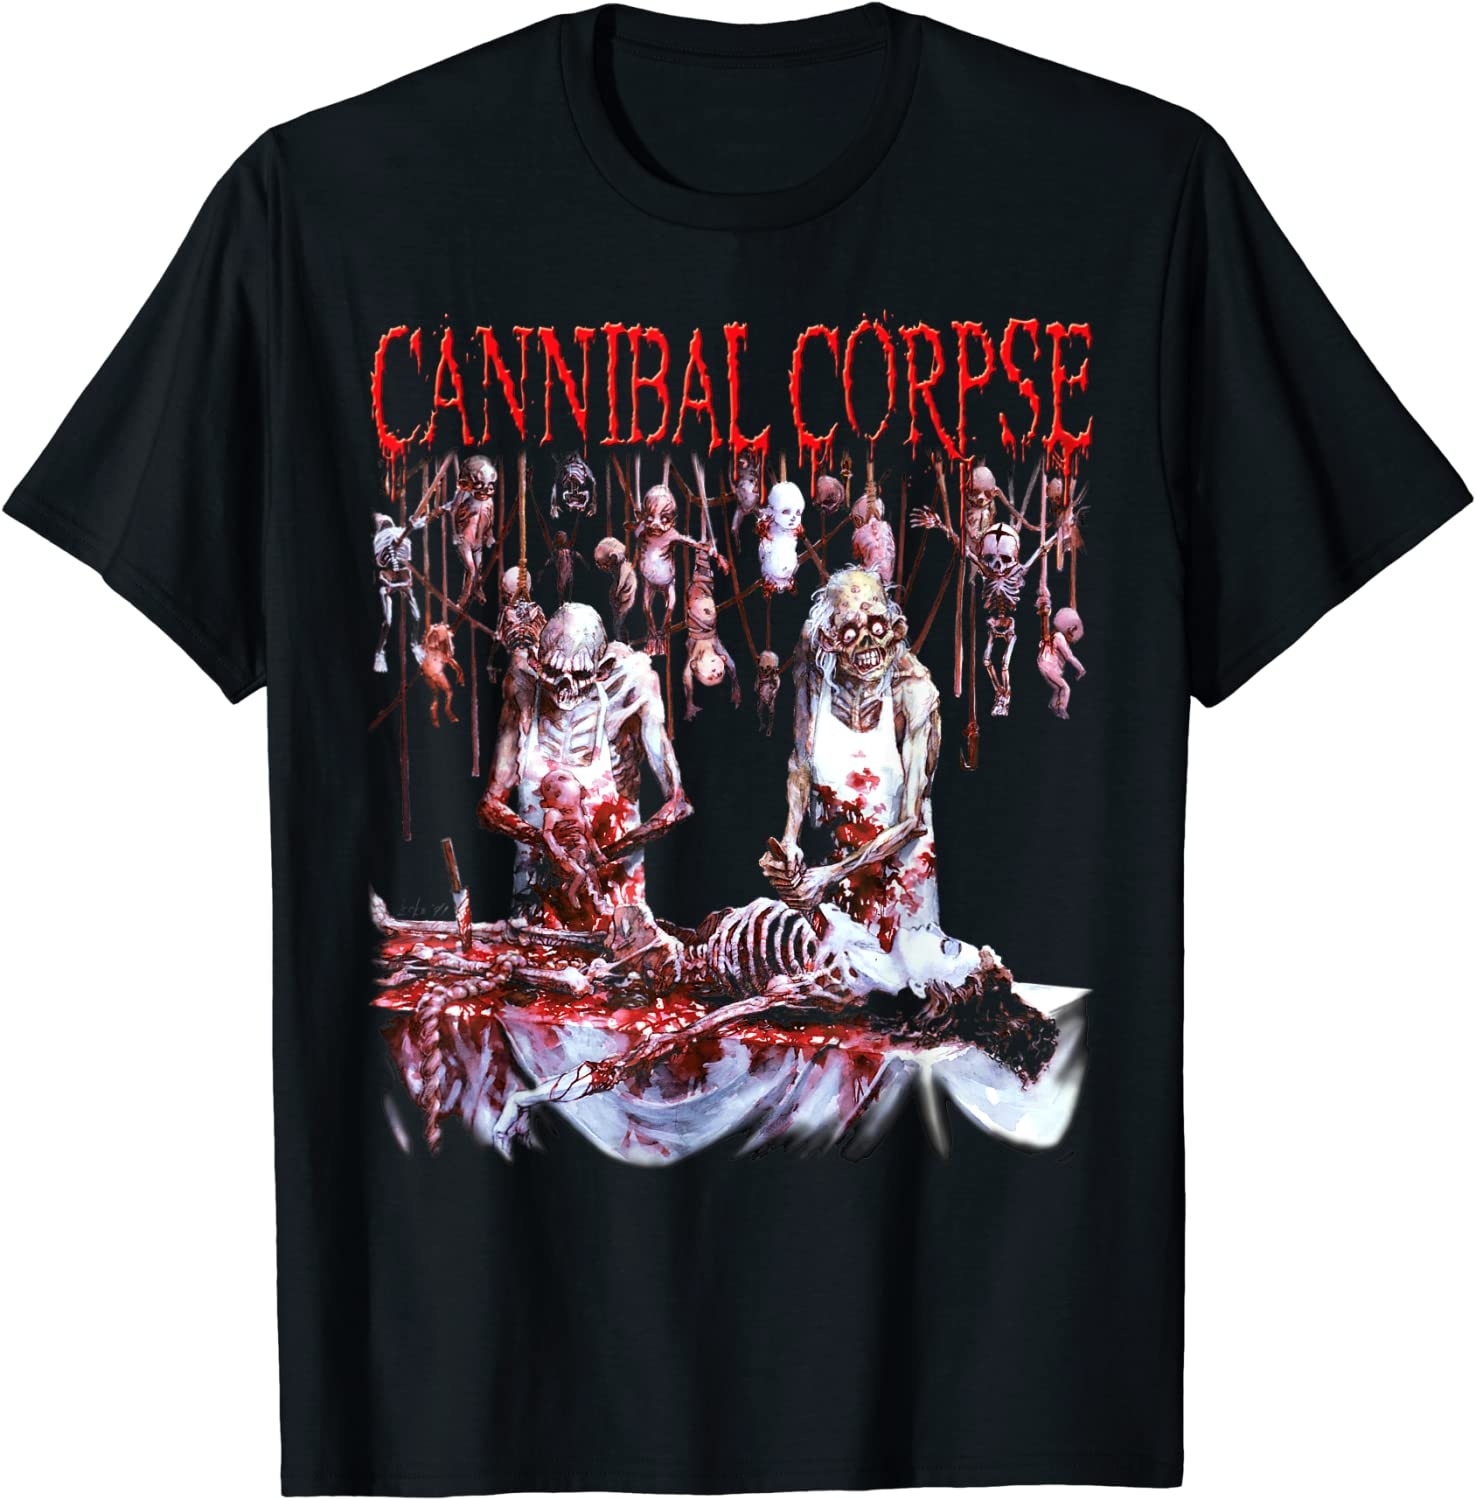 Cannibal Corpse - Official Merchandise - Butchered at Birth T-Shirt